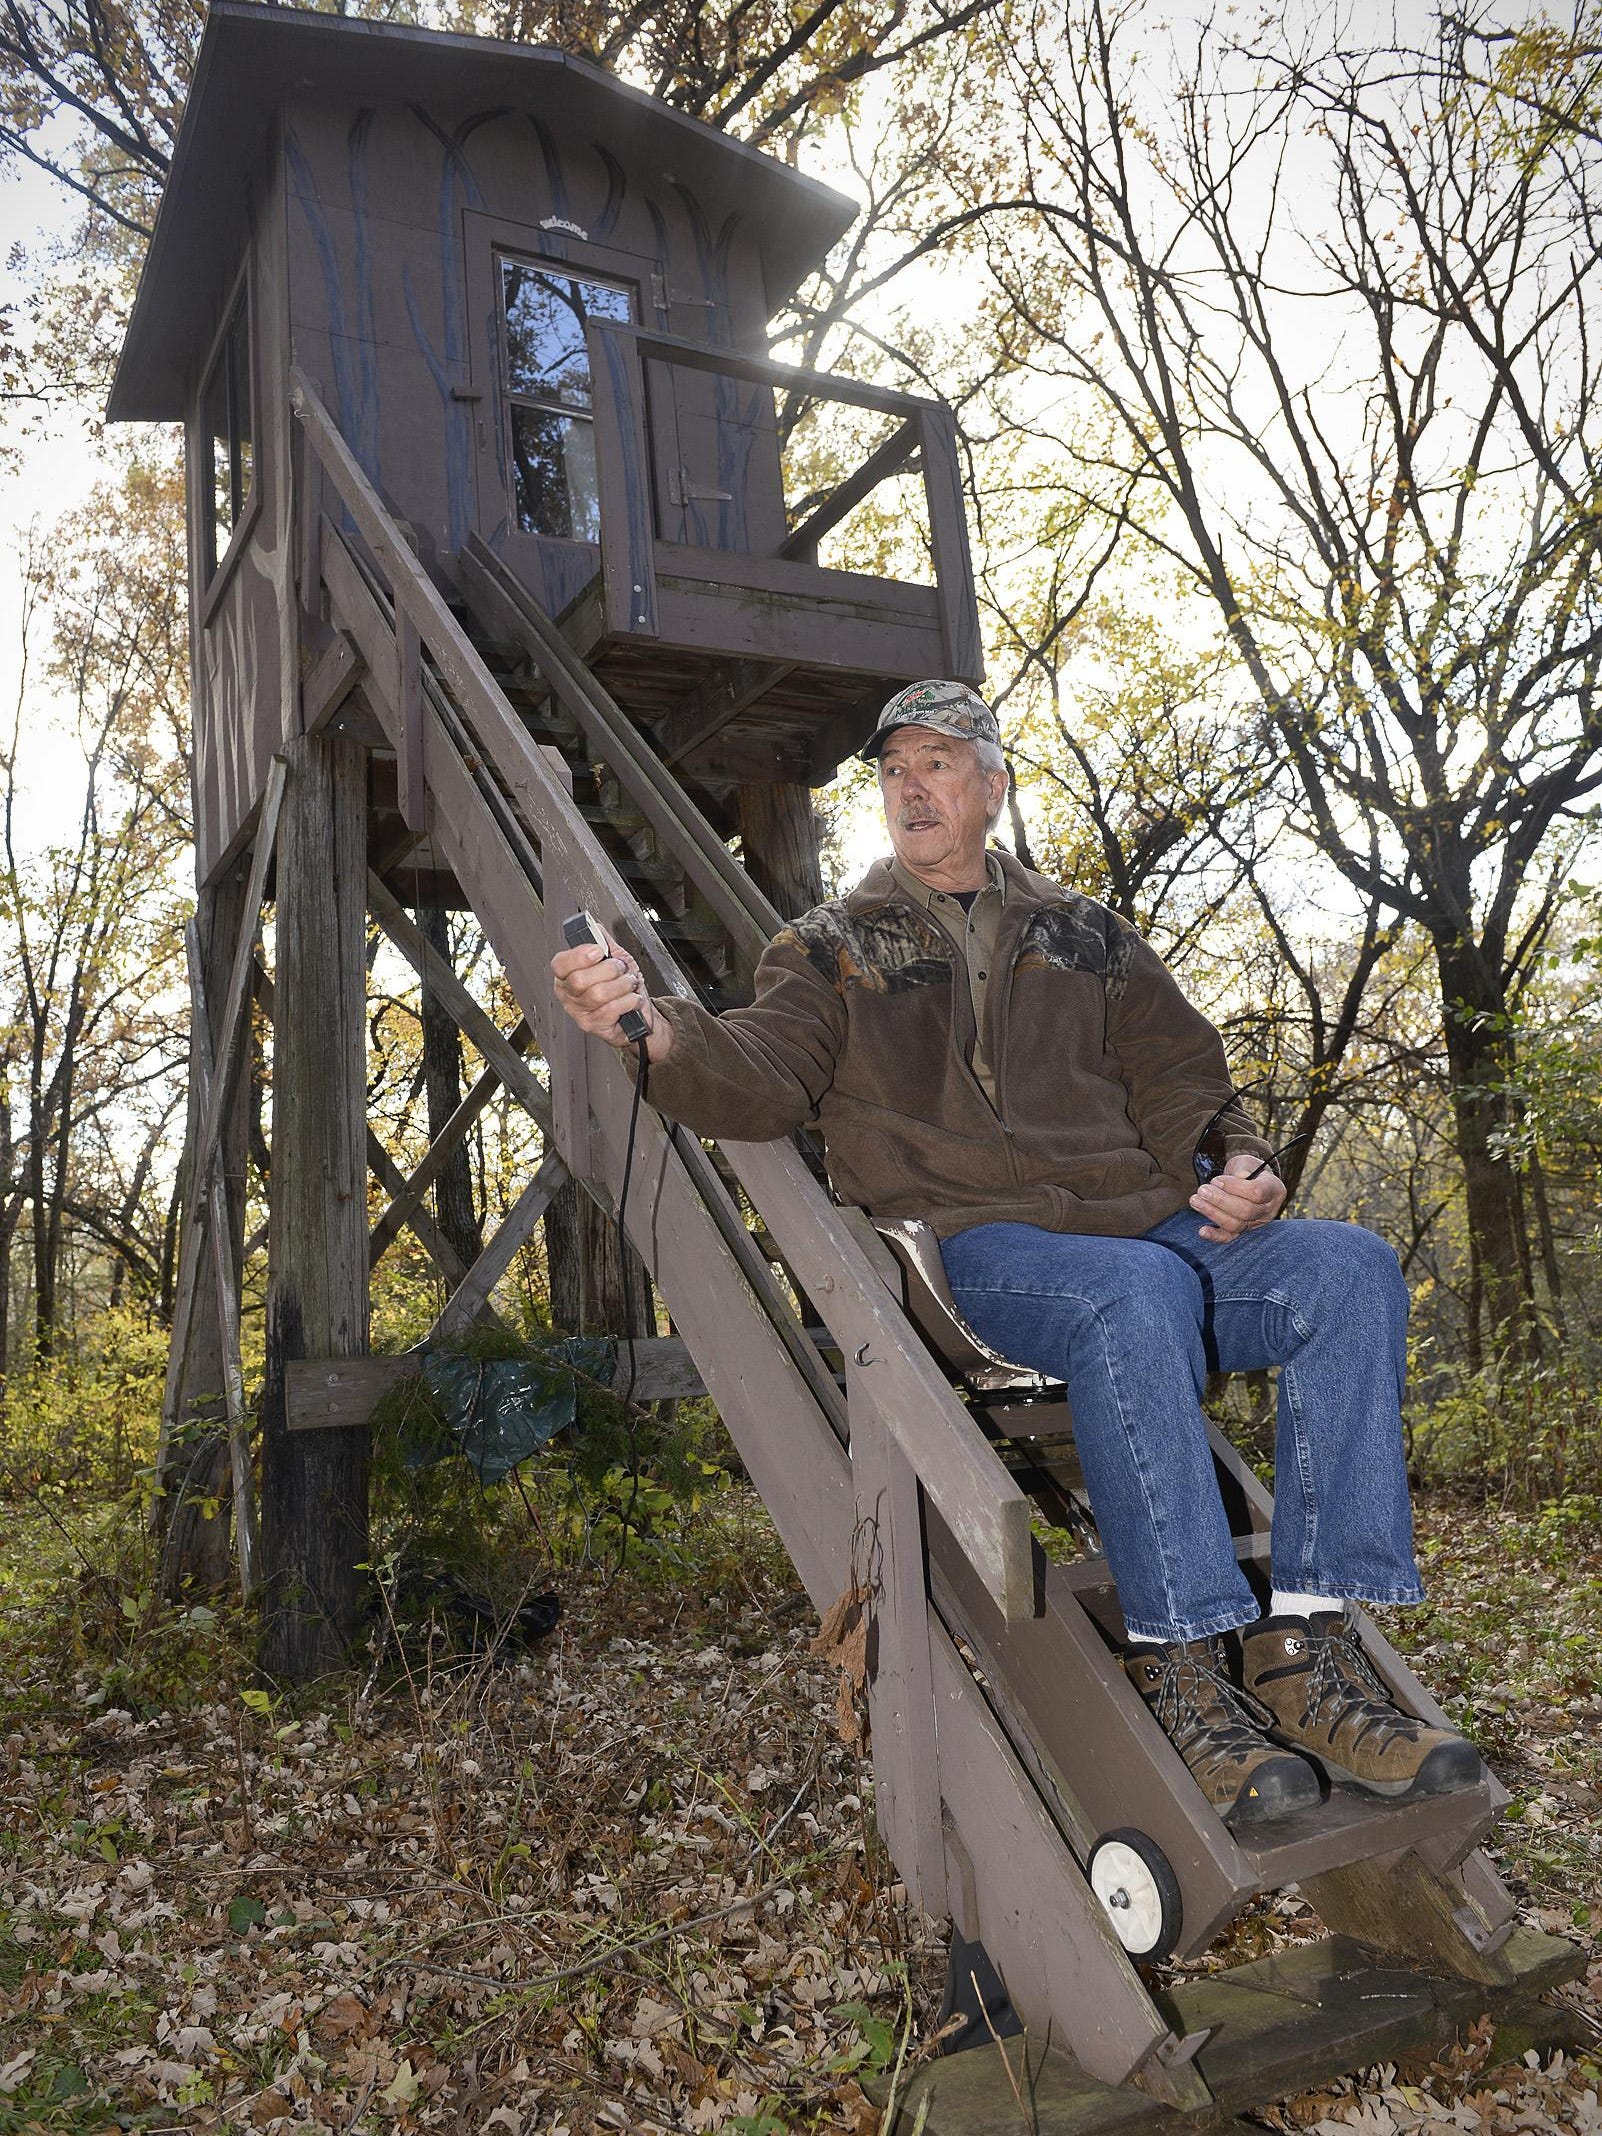 Hunters Unique Deer Stands Hold Stories Plus Heat